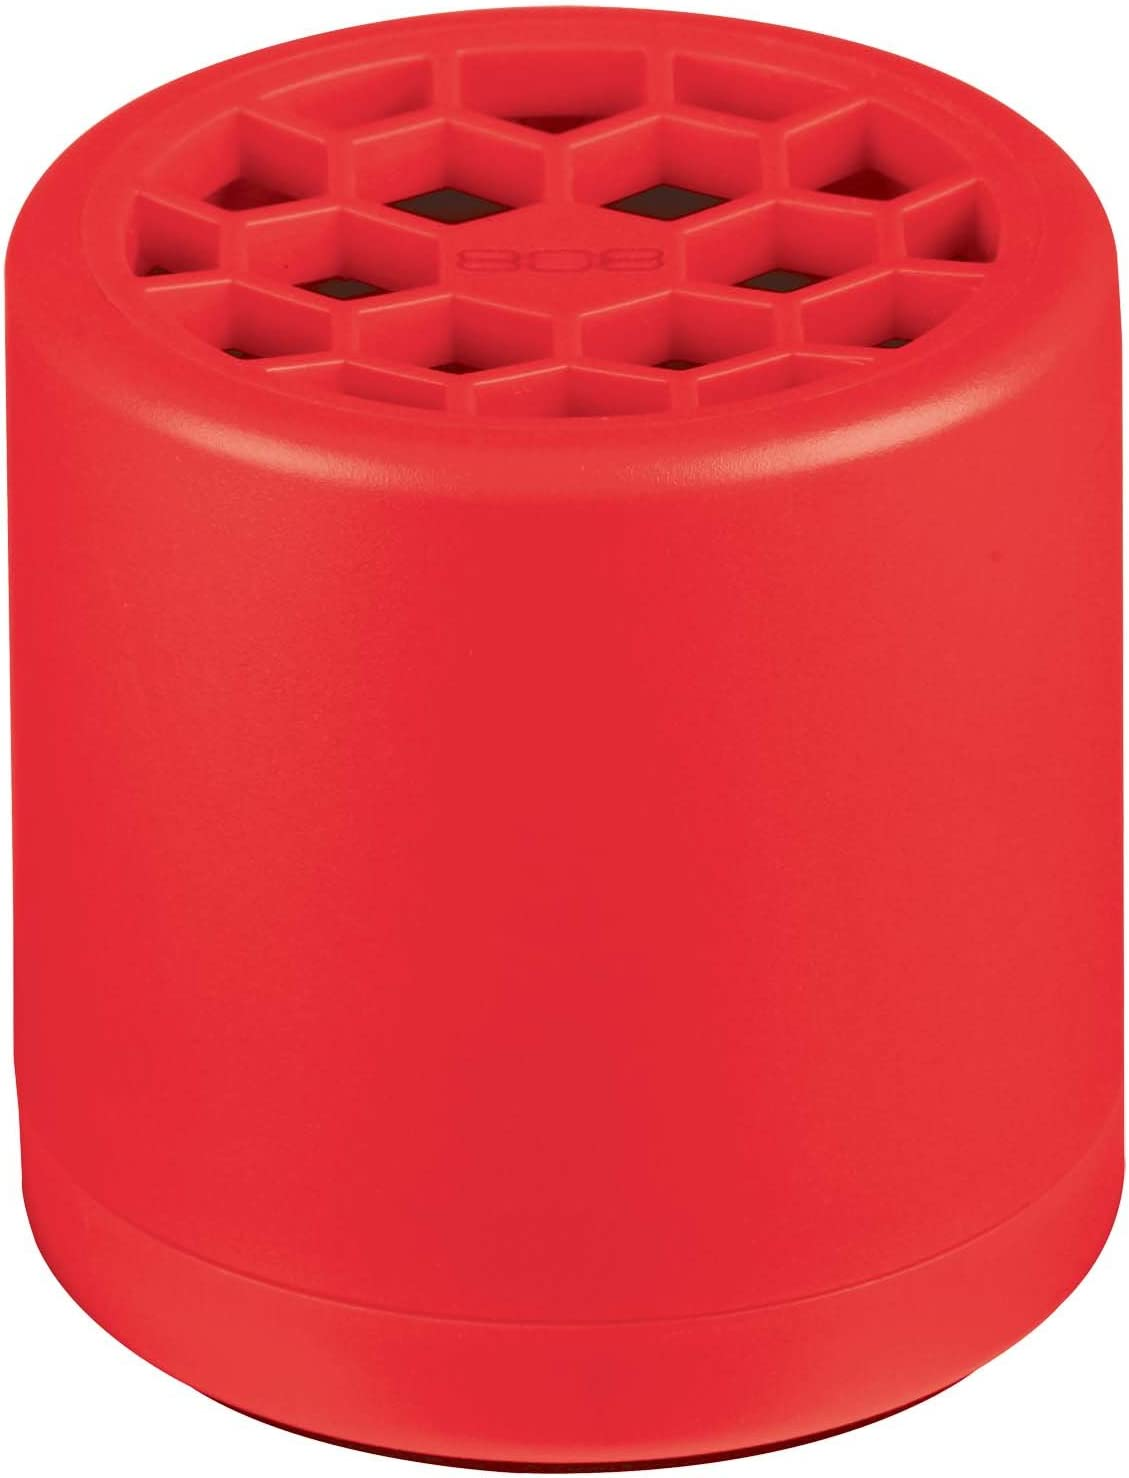 10 Audio SP10RDP Portable Bluetooth Speaker - Red Thump Hex Design from